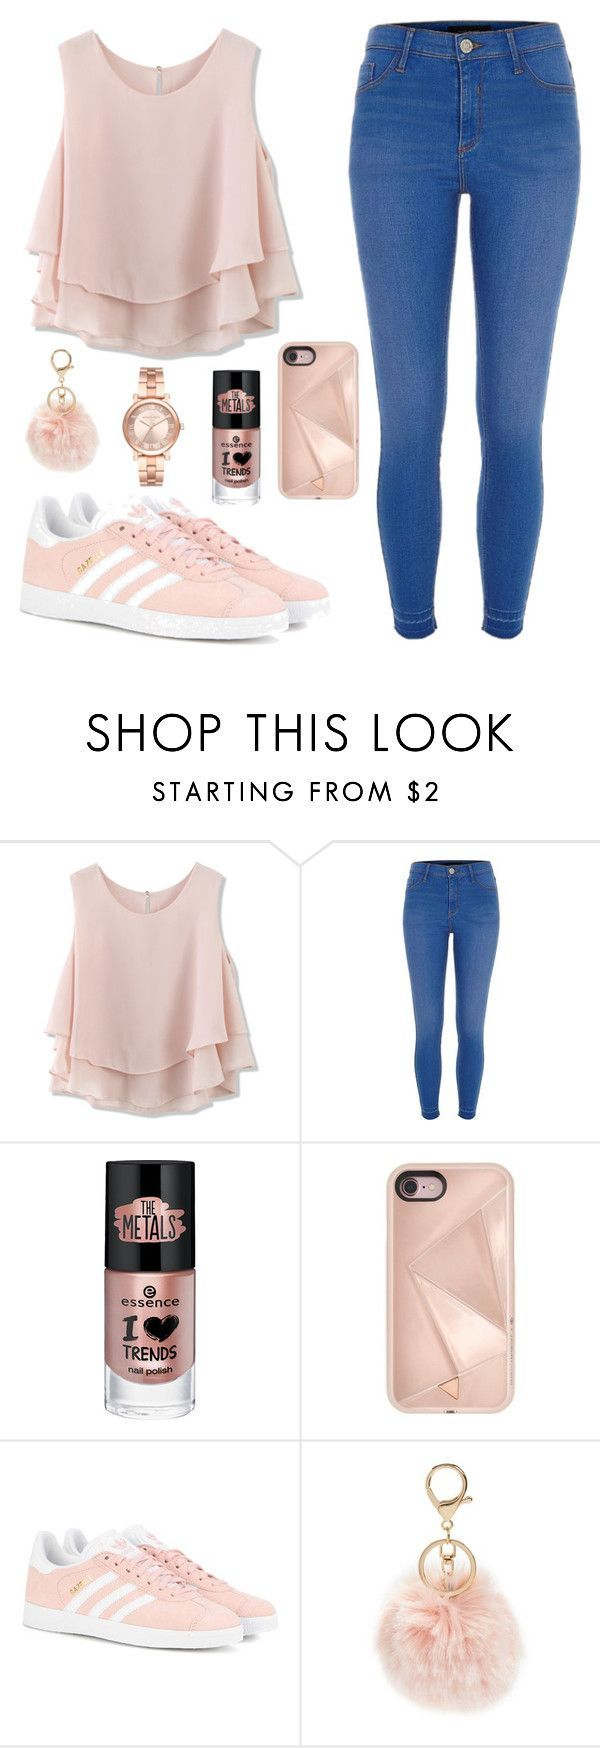 """Blush☺️"" by babyyfinee30 ❤ liked on Polyvore featuring Chicwish, River Island, Rebecca Minkoff, adidas Originals, BP. and Michael Kors"